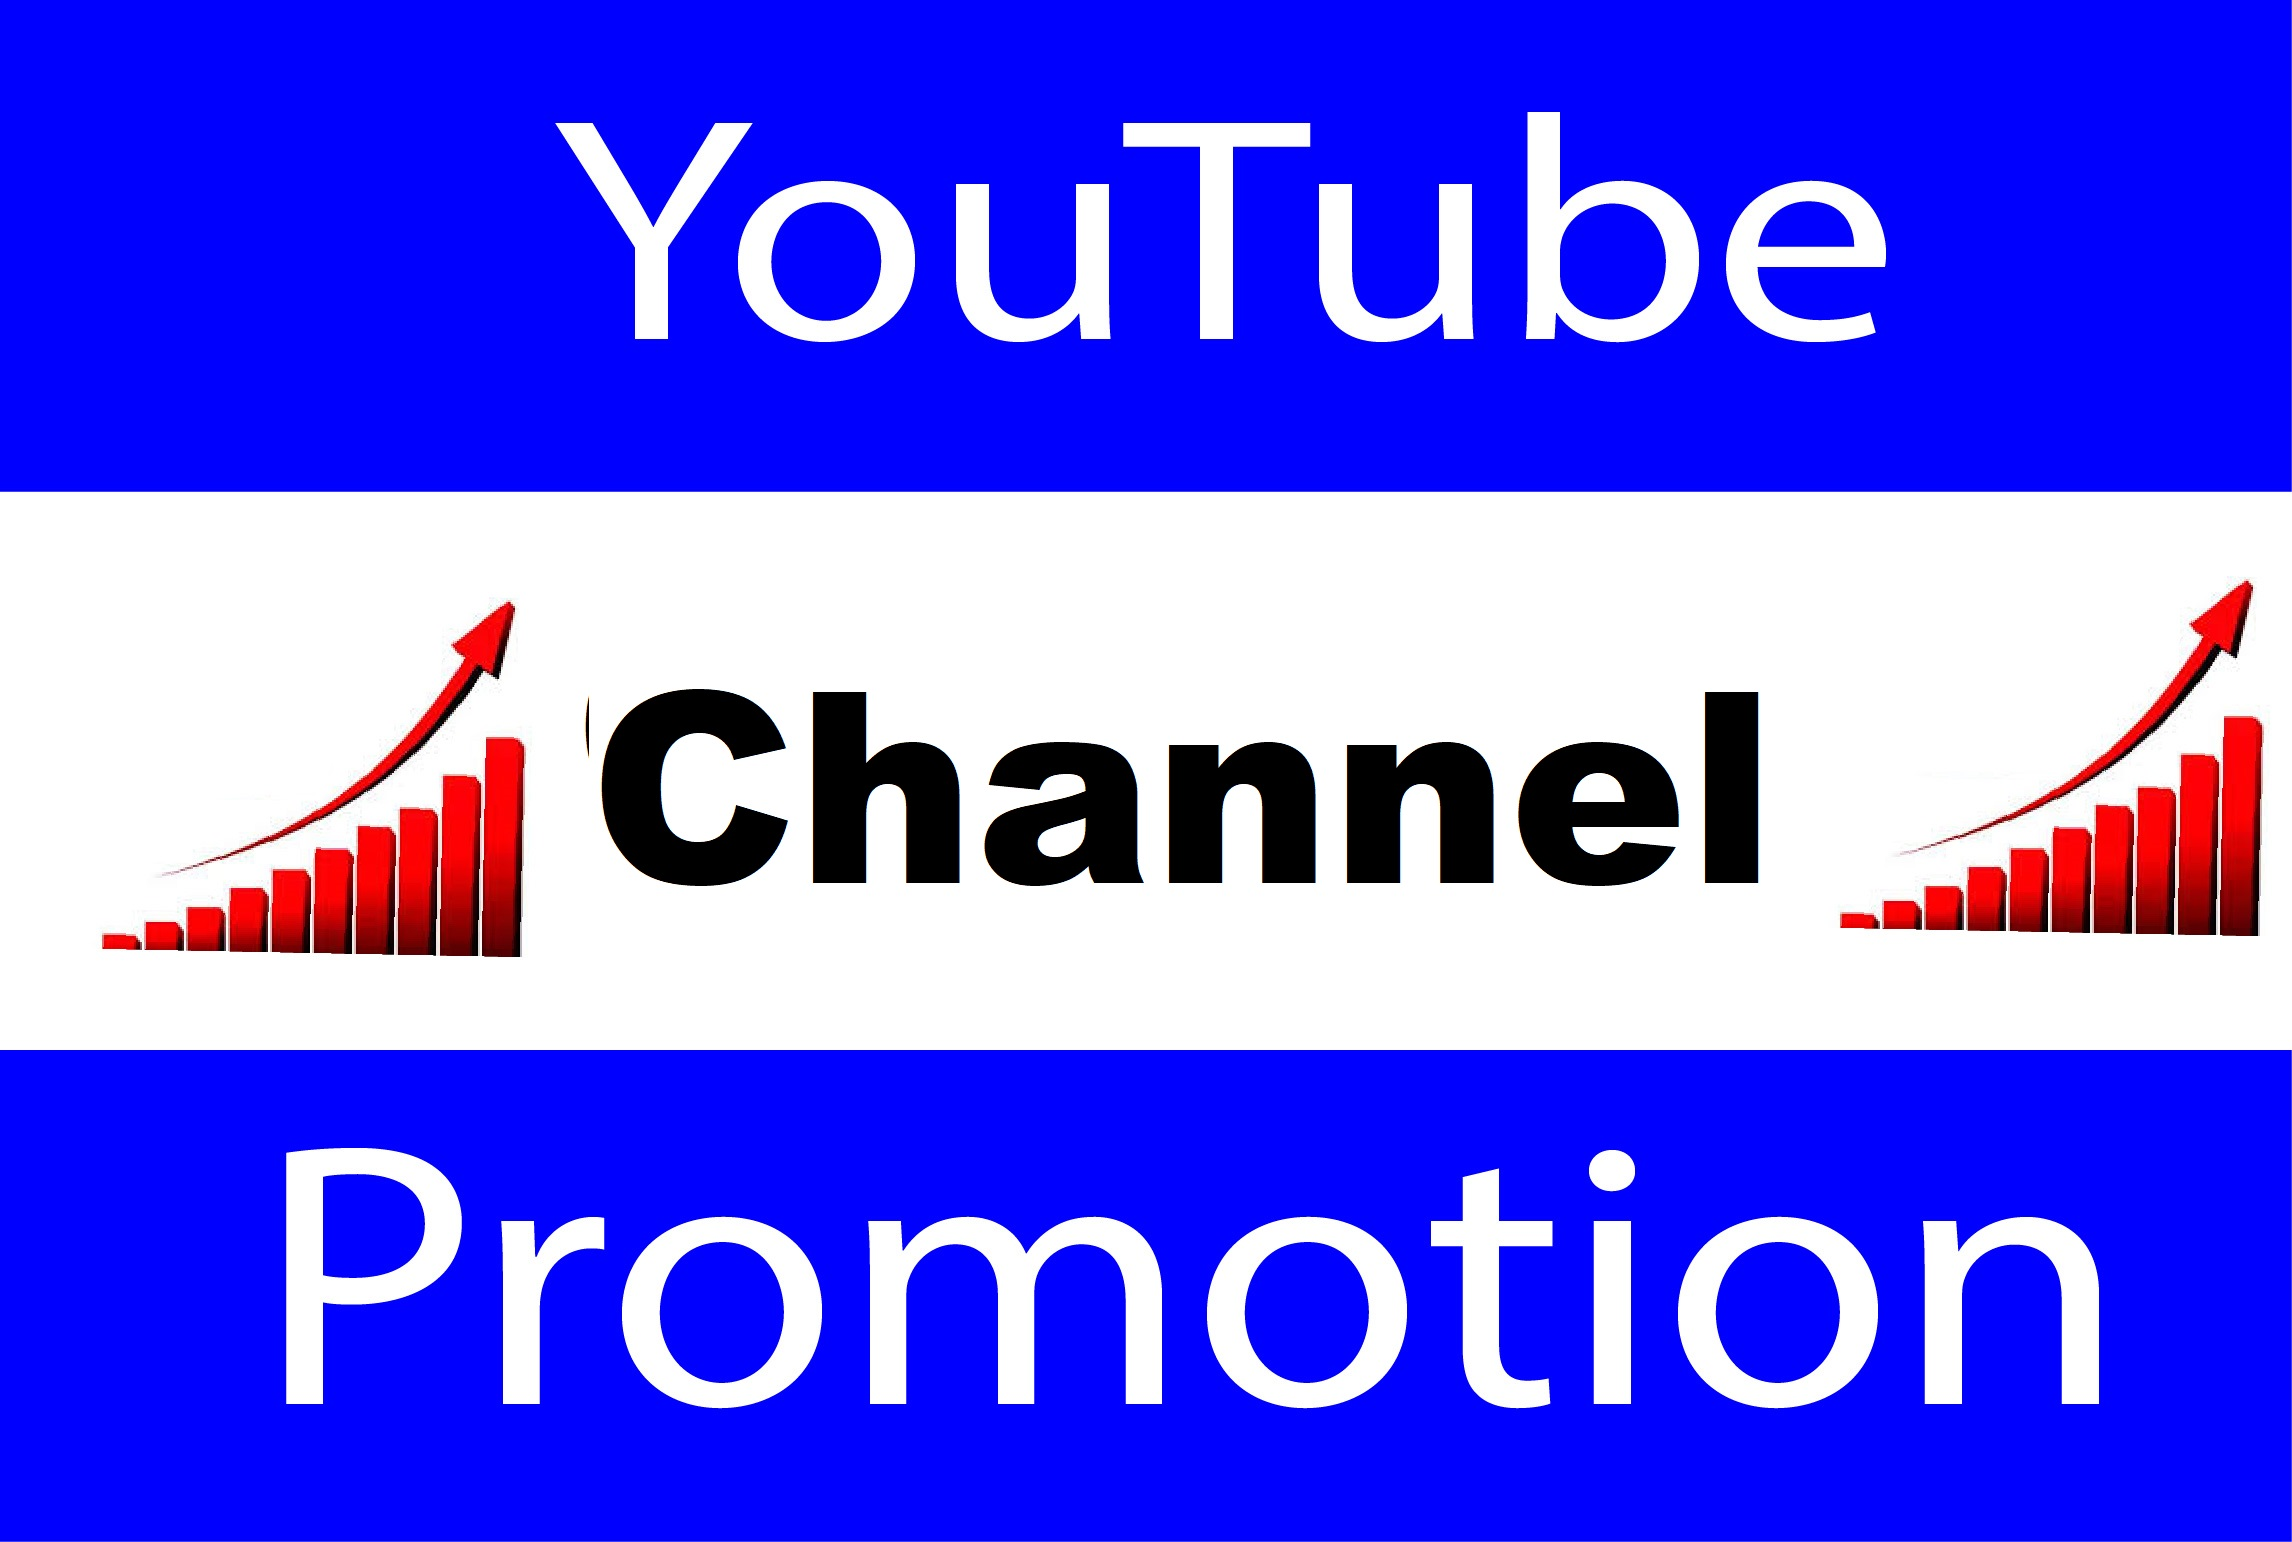 YouTube Account Or Video Promotion and Social Media Marketing